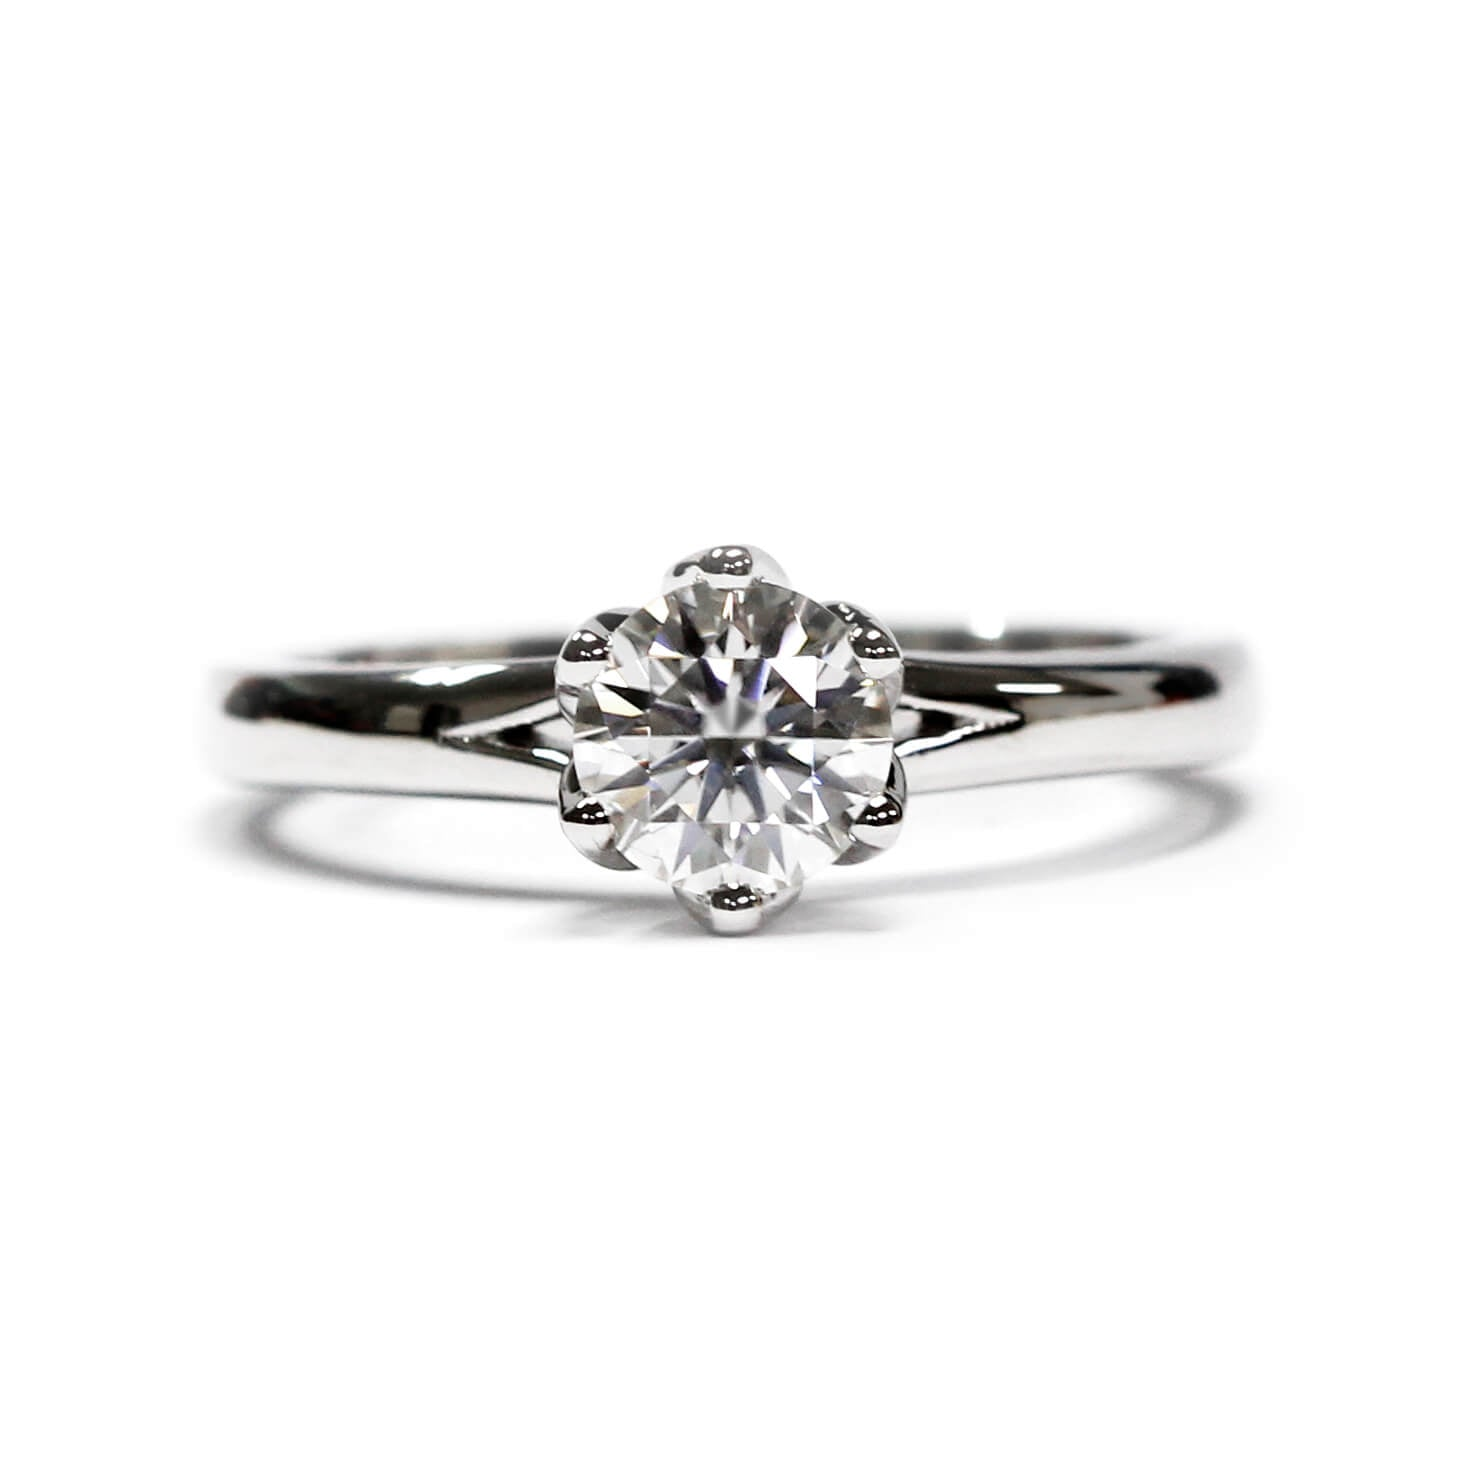 Ready-Made | Eleanor 1.5 Carat Moissanite Solitaire with Flower Petal Setting | Sizes HK 14-15 - LeCaine Gems